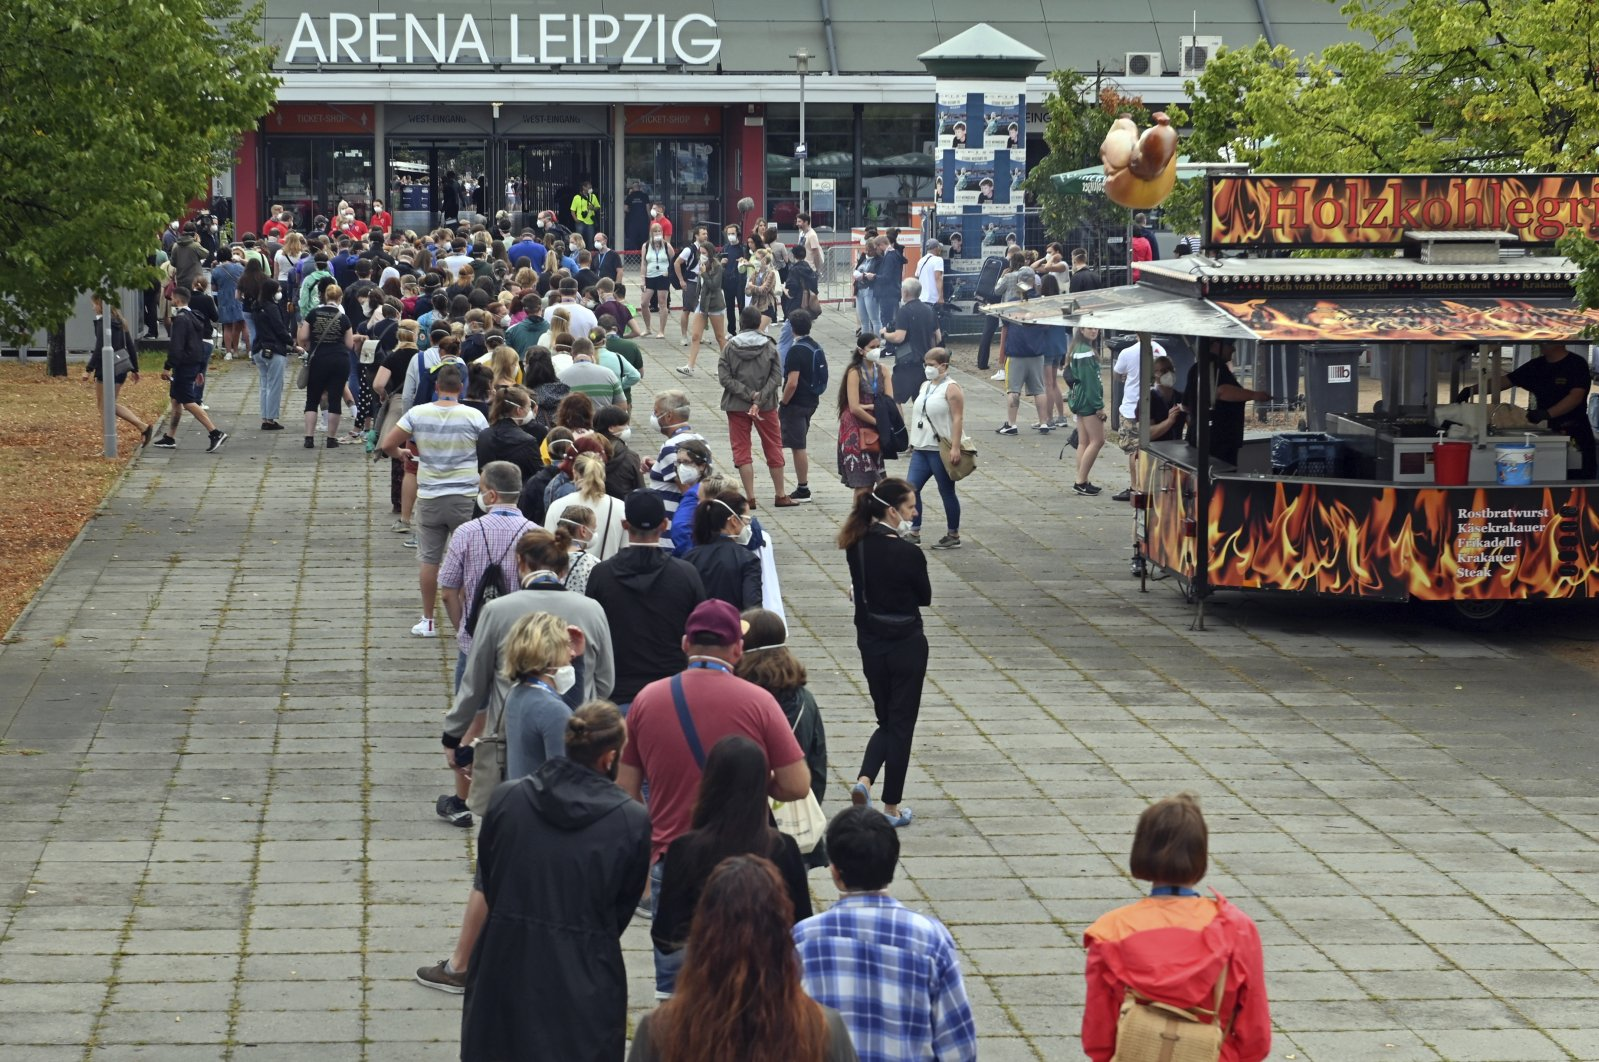 Test persons of a large-scale experiment of the University Medicine Halle/Saale are standing at the entrance in front of the Arena Leipzig, Saxony, Leipzig on Aug. 22, 2020. (AP Photo)